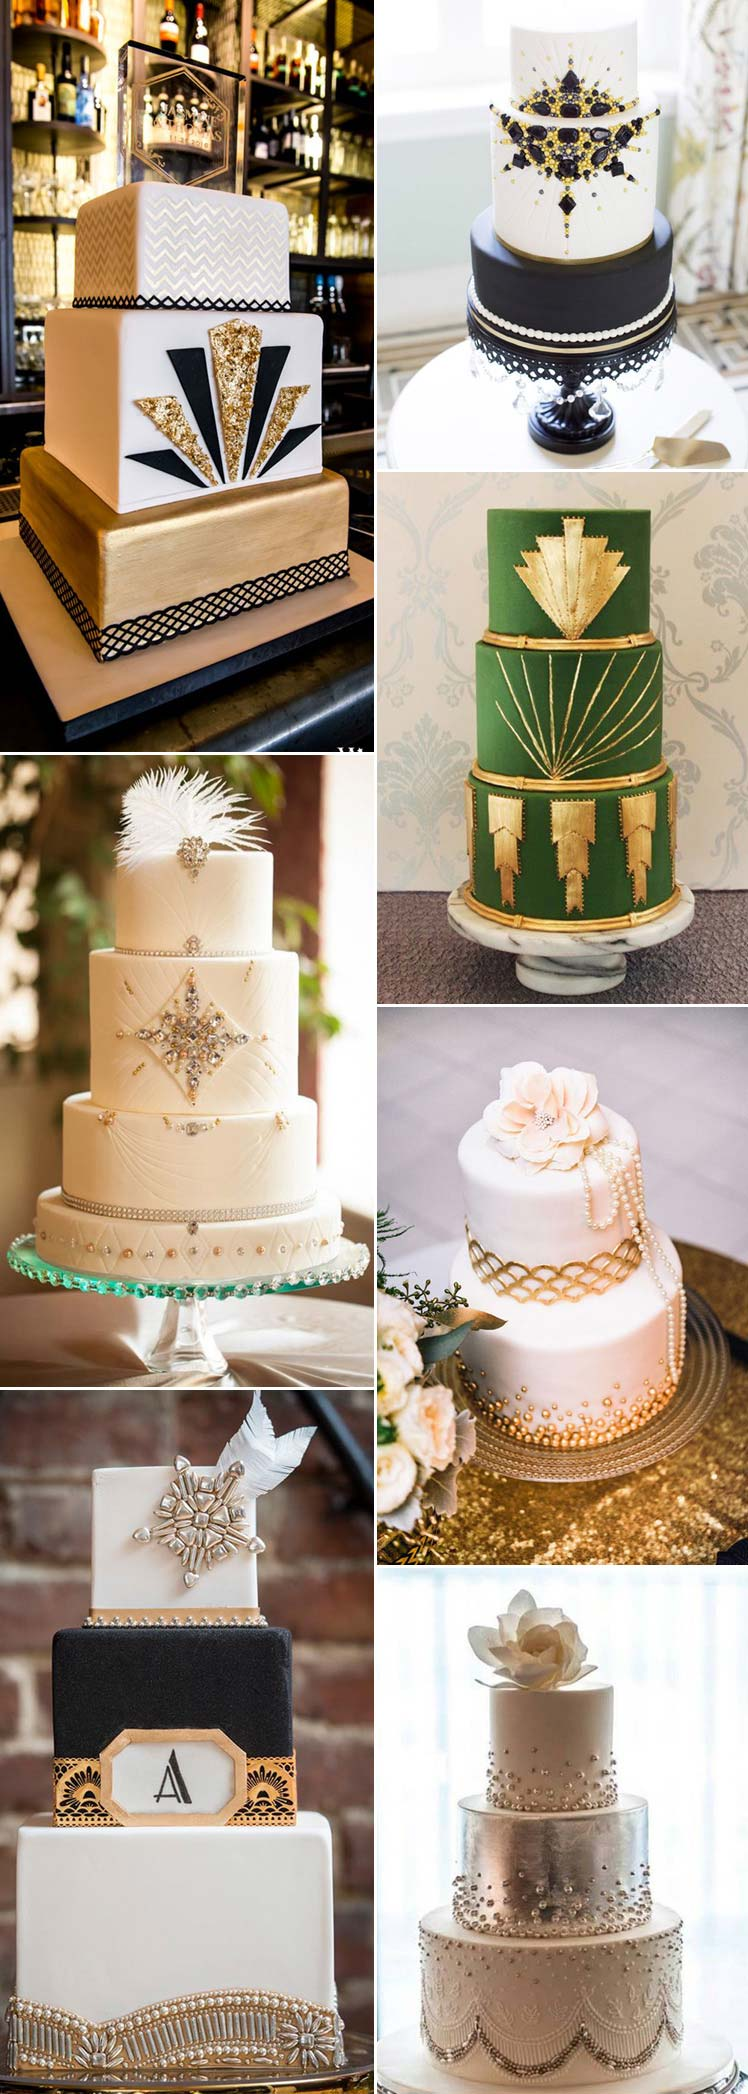 sensational Gatsby wedding cakes